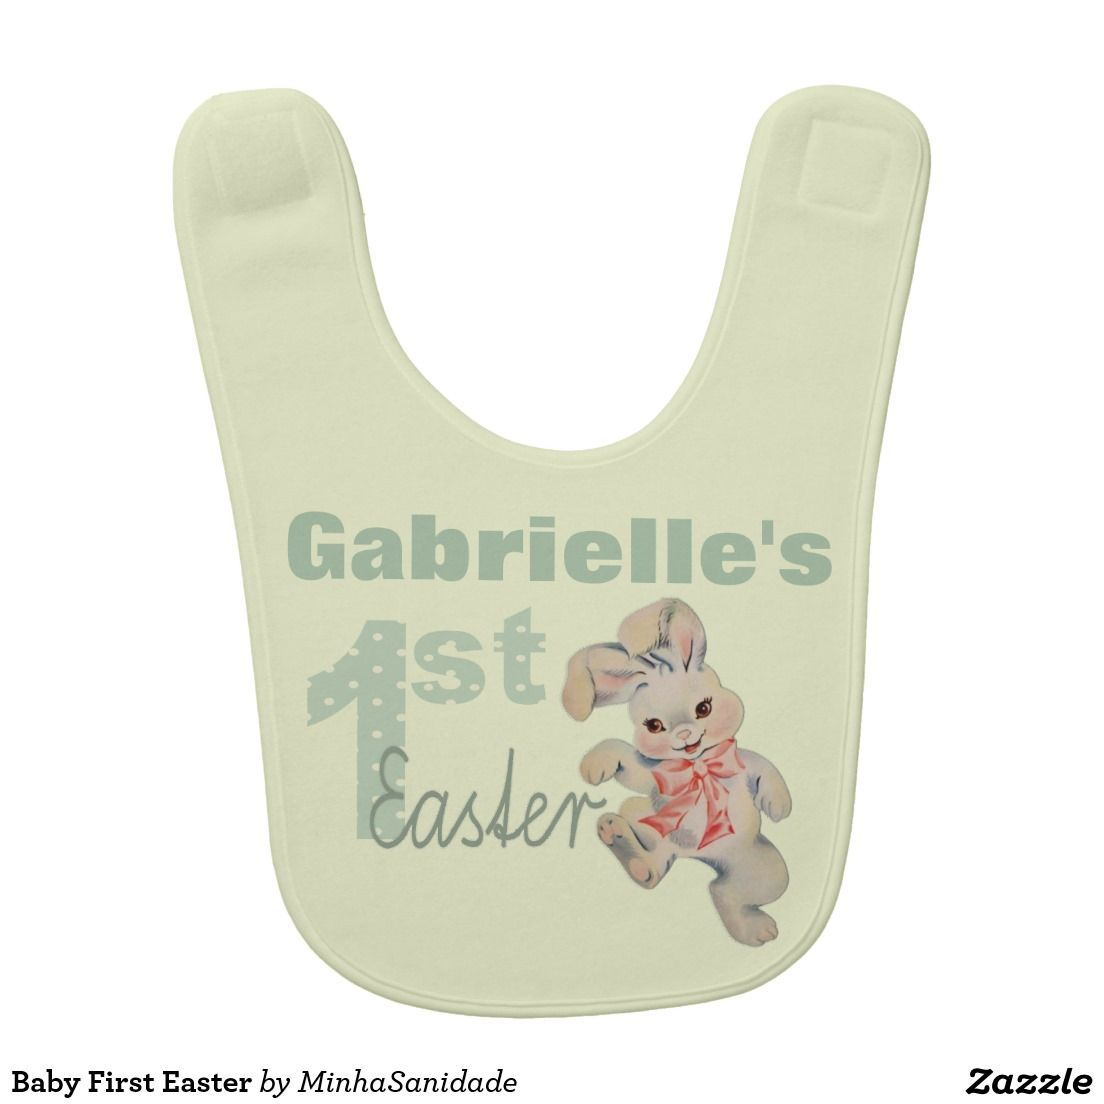 "Super cute baby bib in yellow and green with and faux embroidery vintage bunny rabbit illustration and the message: ""1st Easter"". Customise the bib with your baby's name and she is ready for her first easter. Just too much cuteness together! Suitable for both baby girls or baby boys."